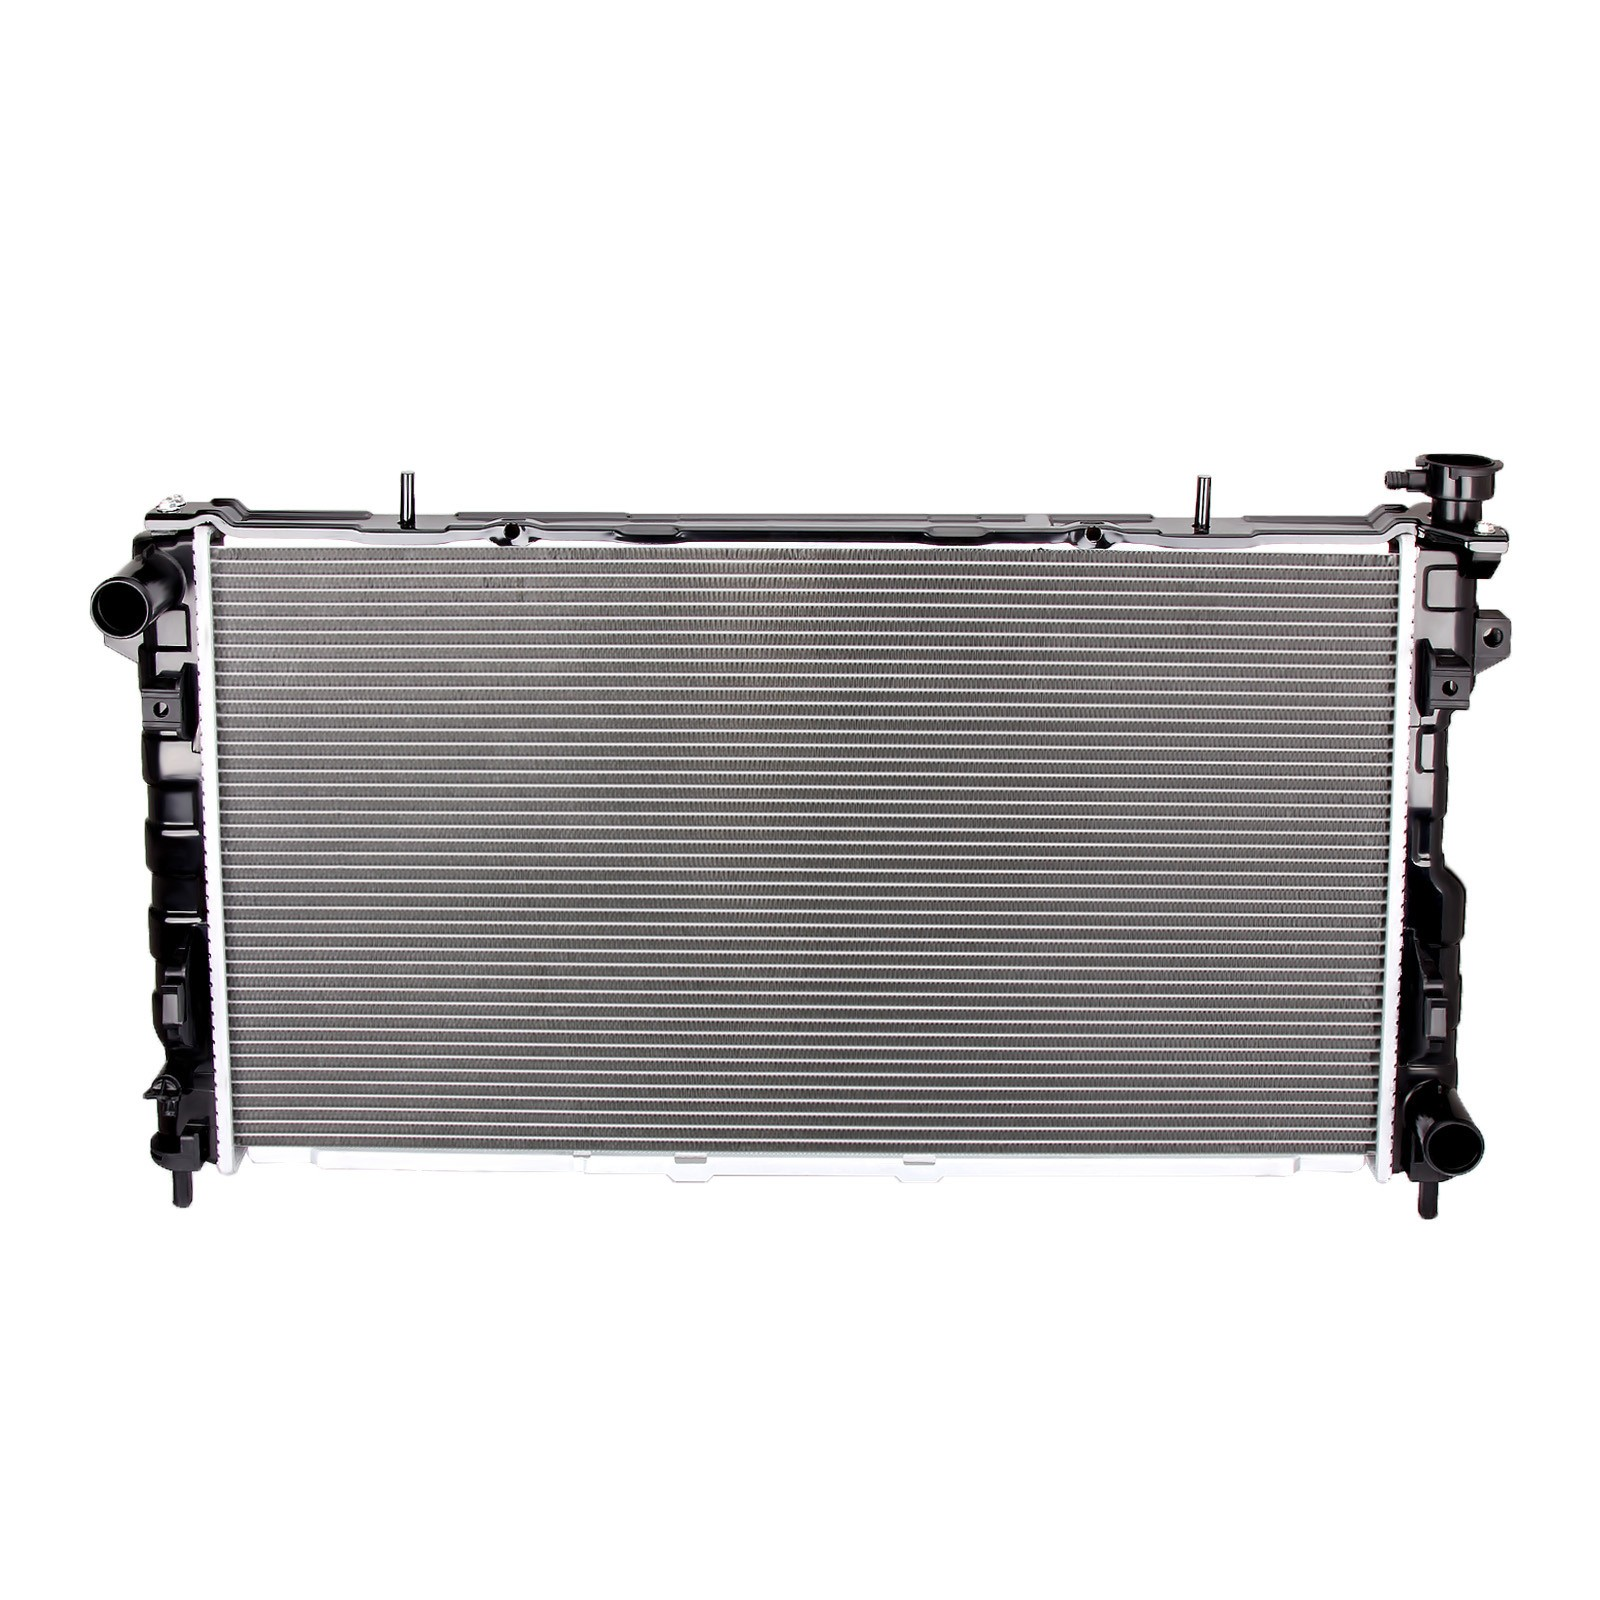 Dromedary-Best Dodge Caravan Radiator 2795 Radiator For Chrysler Town Country Dodge Grand V6 3-5